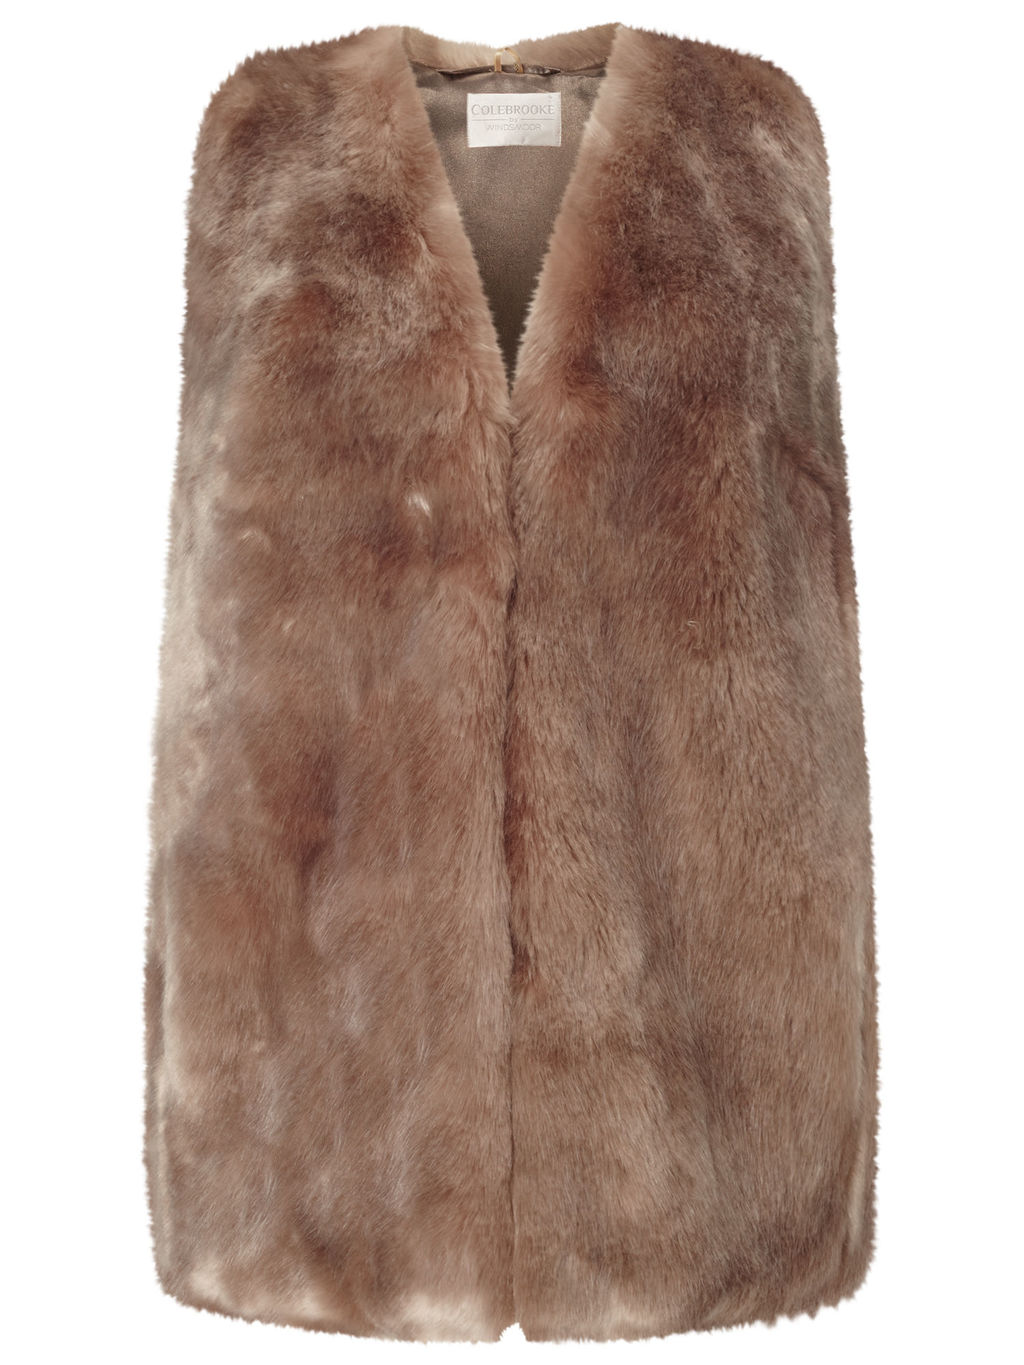 Faux Fur Gilet - pattern: plain; sleeve style: sleeveless; style: gilet; collar: round collar/collarless; fit: slim fit; predominant colour: camel; occasions: casual, creative work; length: standard; fibres: acrylic - 100%; sleeve length: sleeveless; texture group: fur; collar break: medium; pattern type: fabric; season: s/s 2016; wardrobe: highlight